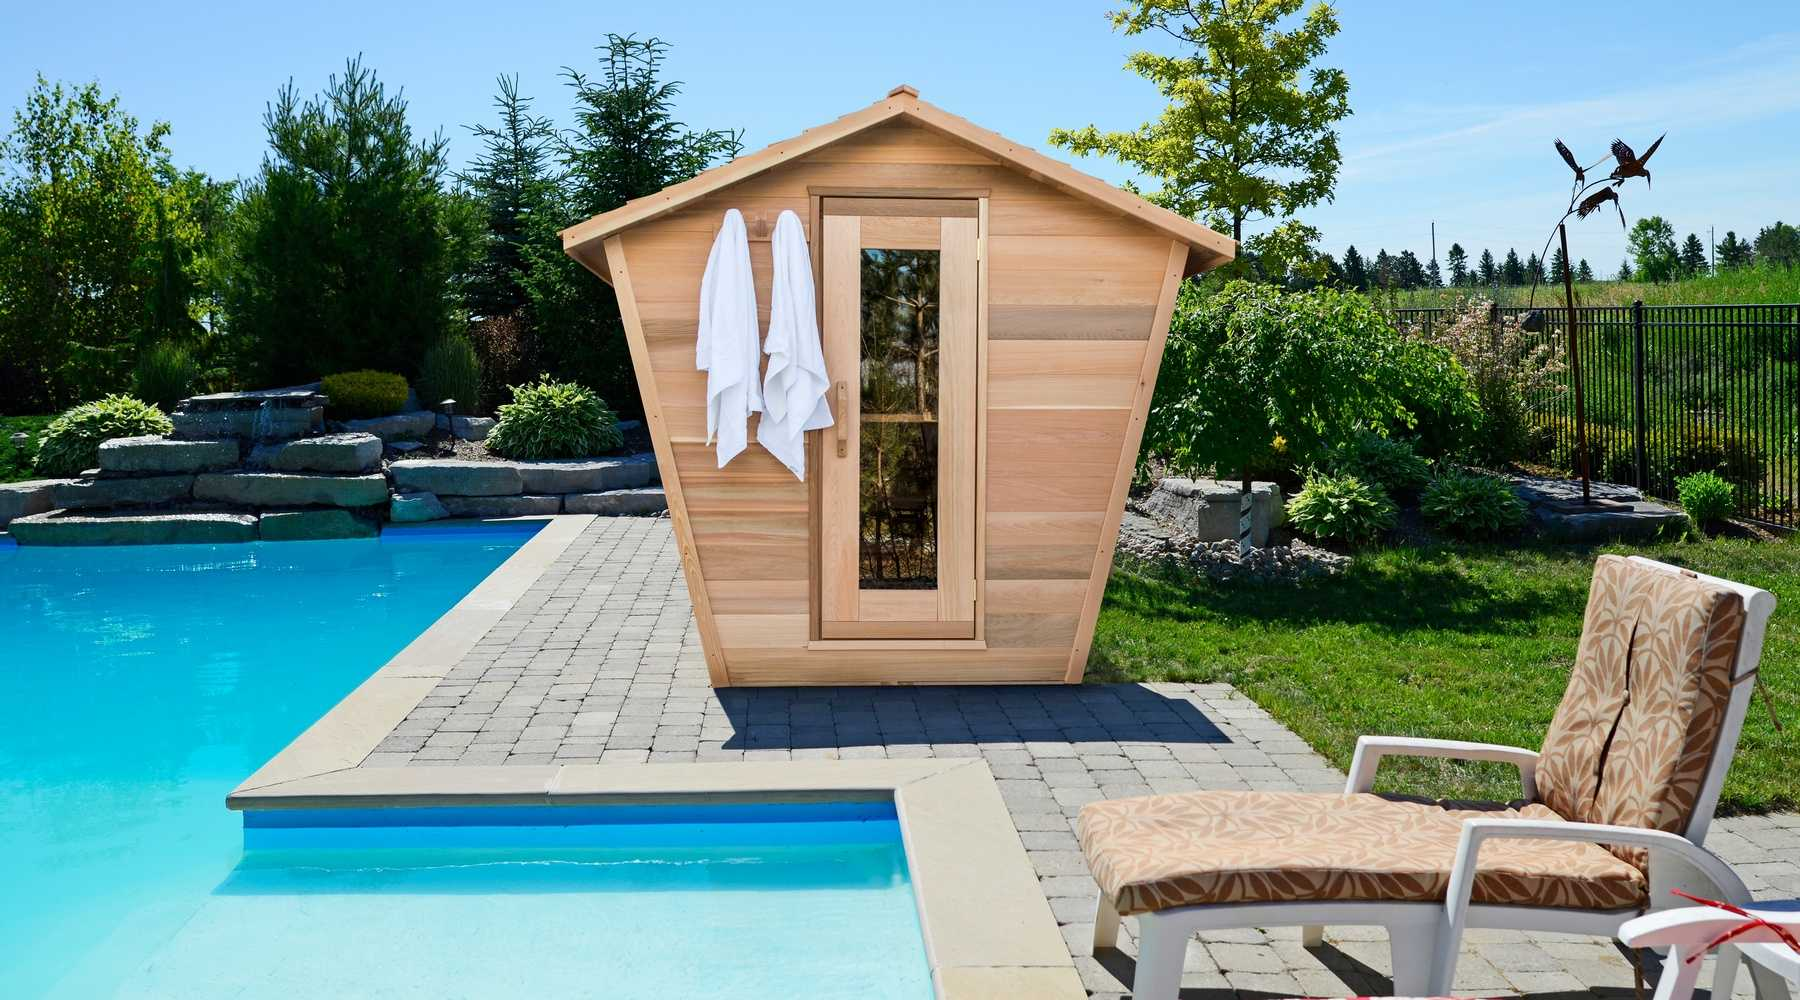 Dundalk Leisure Craft sauna buyers guide, part 2